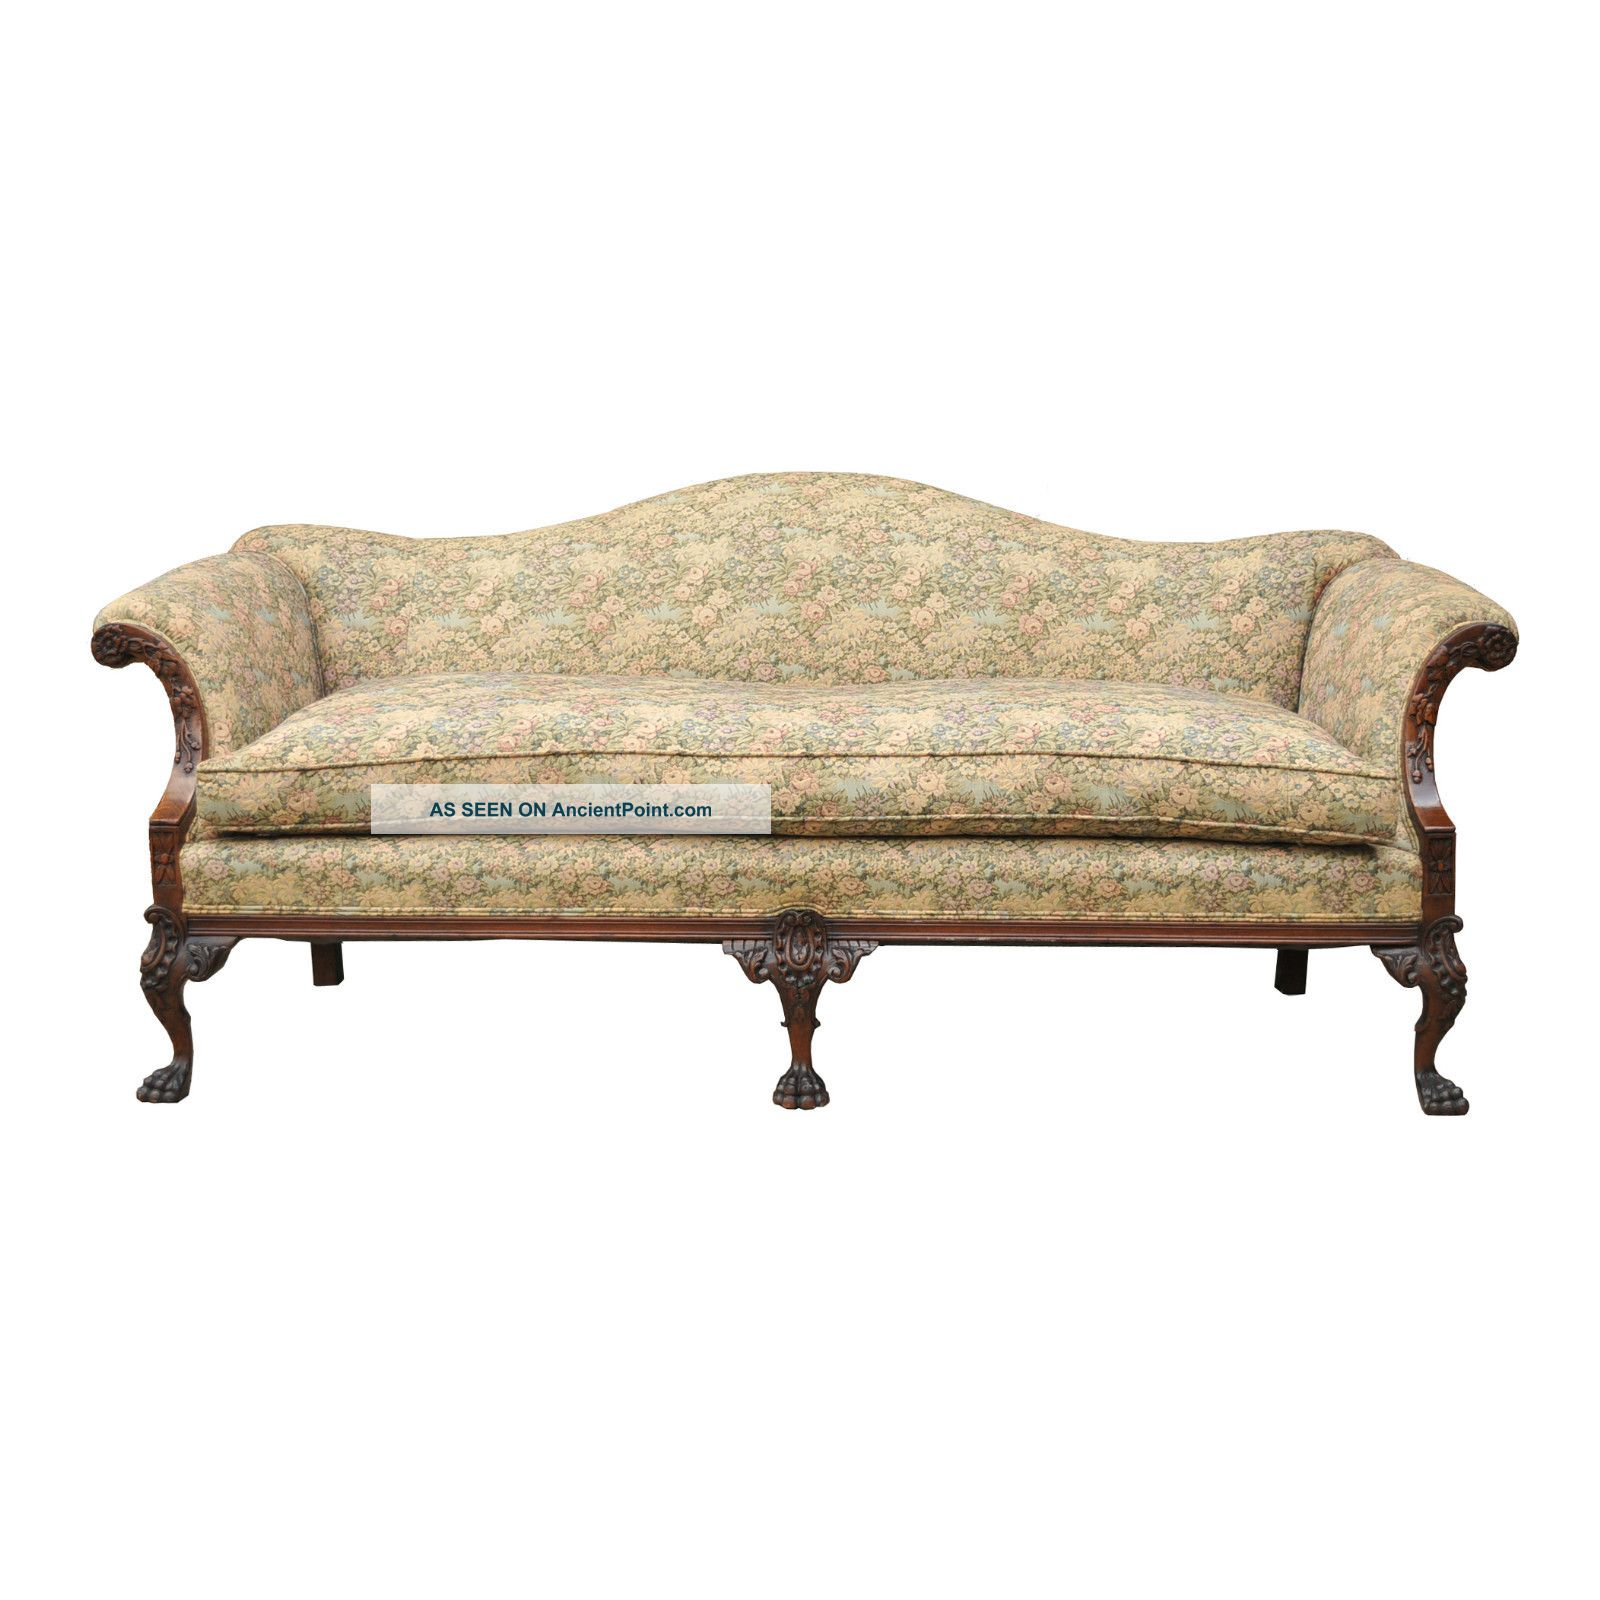 Groovy Antique Sofa Back Tables Sofa And Loveseat Sets On Sale Theyellowbook Wood Chair Design Ideas Theyellowbookinfo